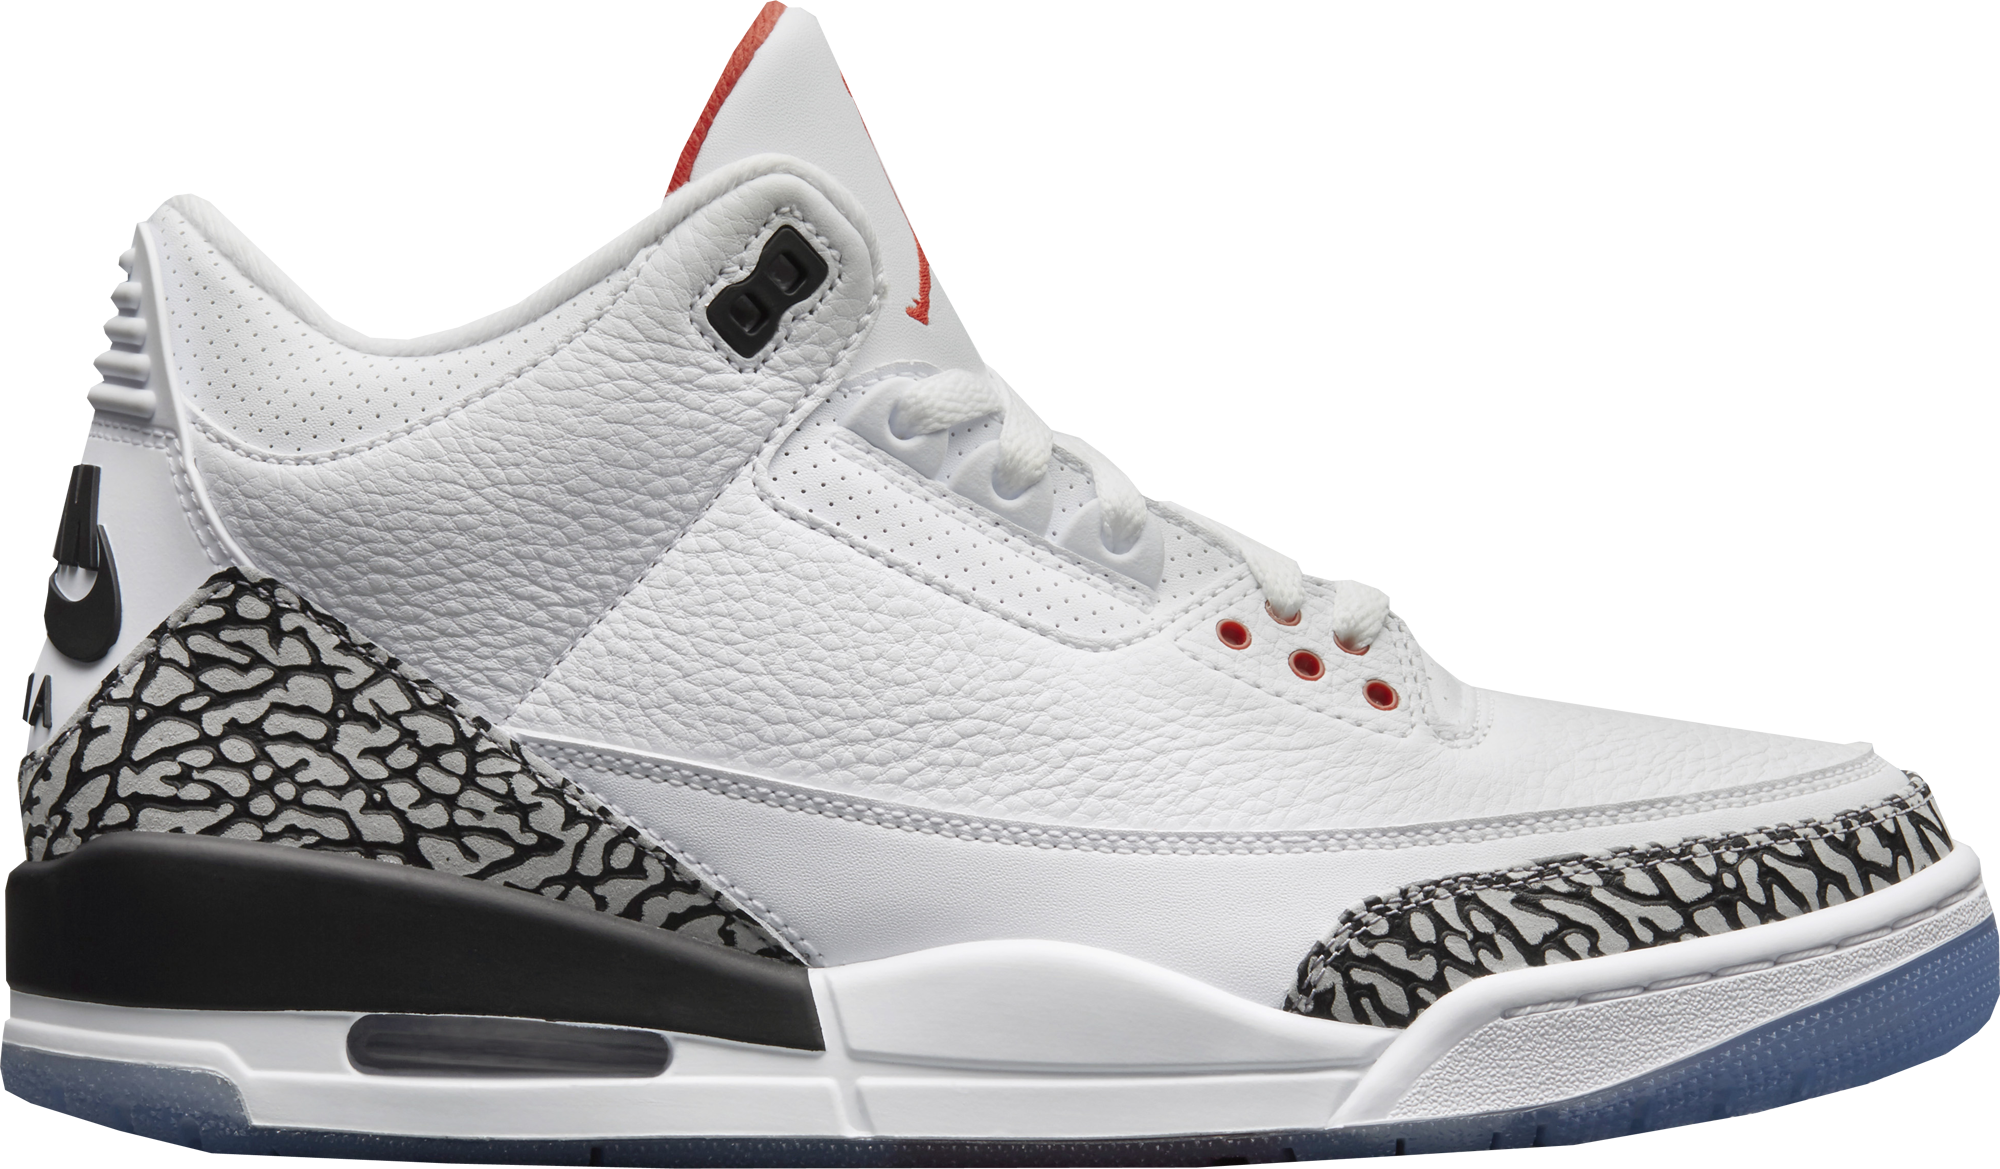 air jordan iii free throw line stock x legit